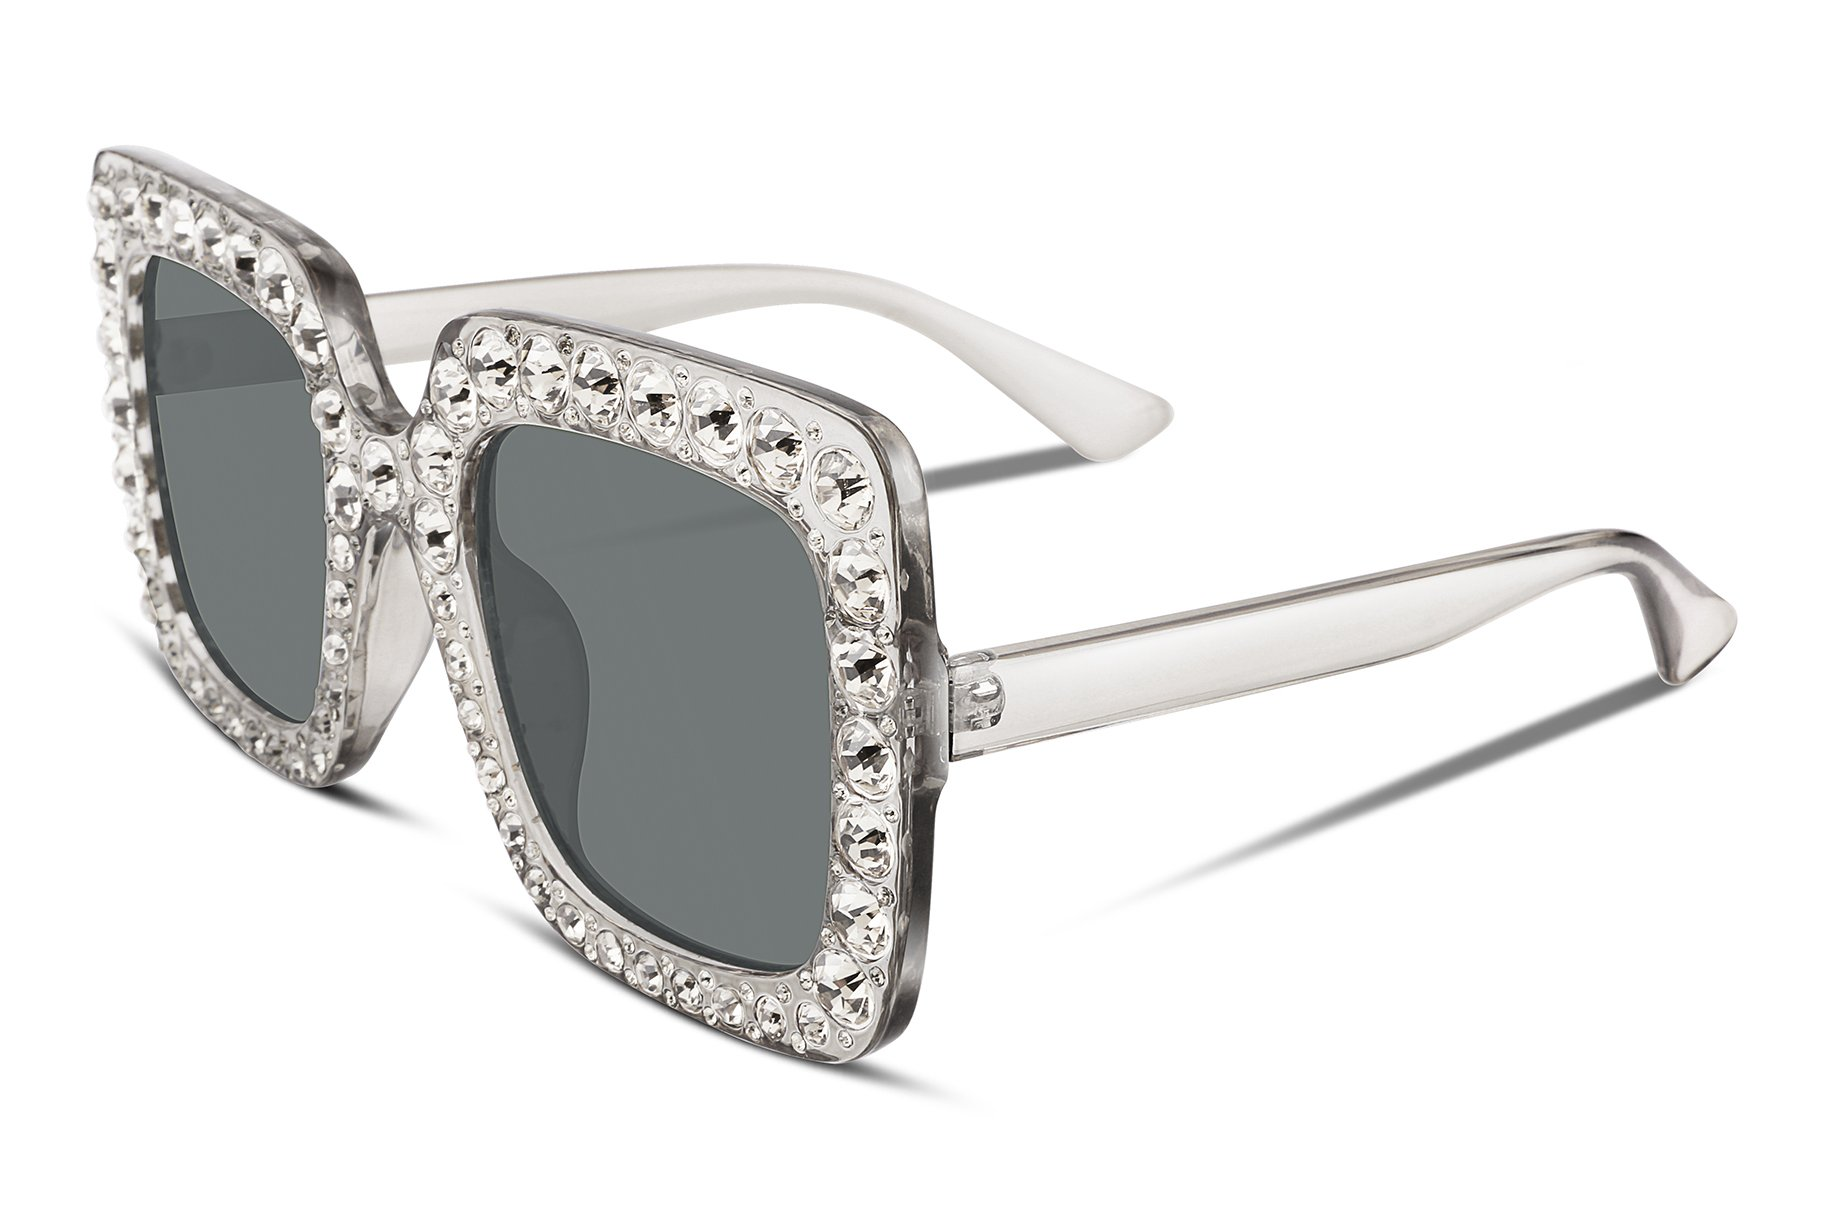 e49d576c016 FEISEDY Women Sparkling Crystal Sunglasses Oversized Square Thick Frame  B2283 product image